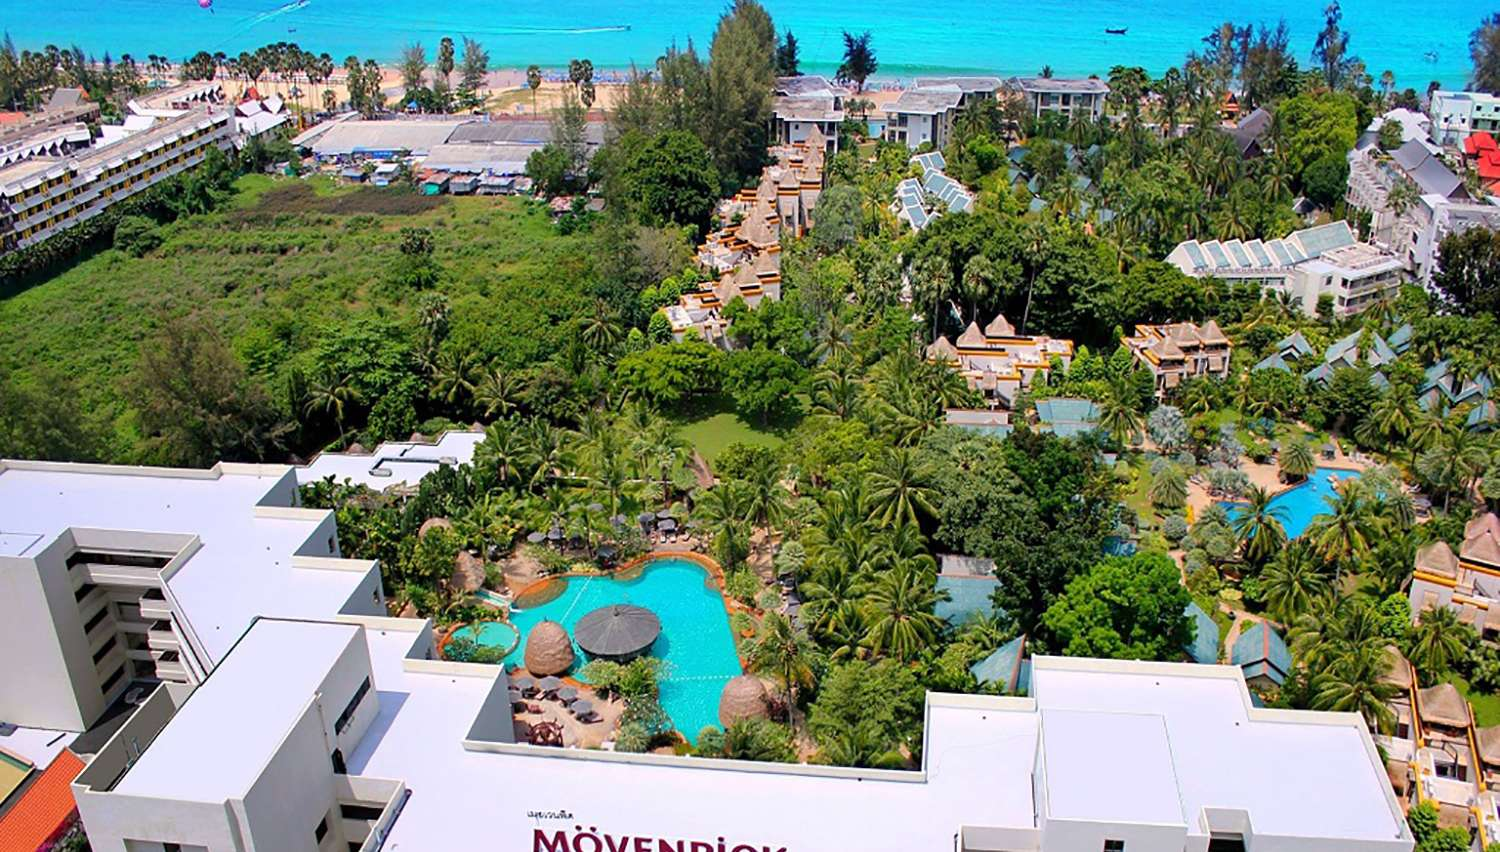 Movenpick Resort Villas & SPA (Phuket, Taizeme)